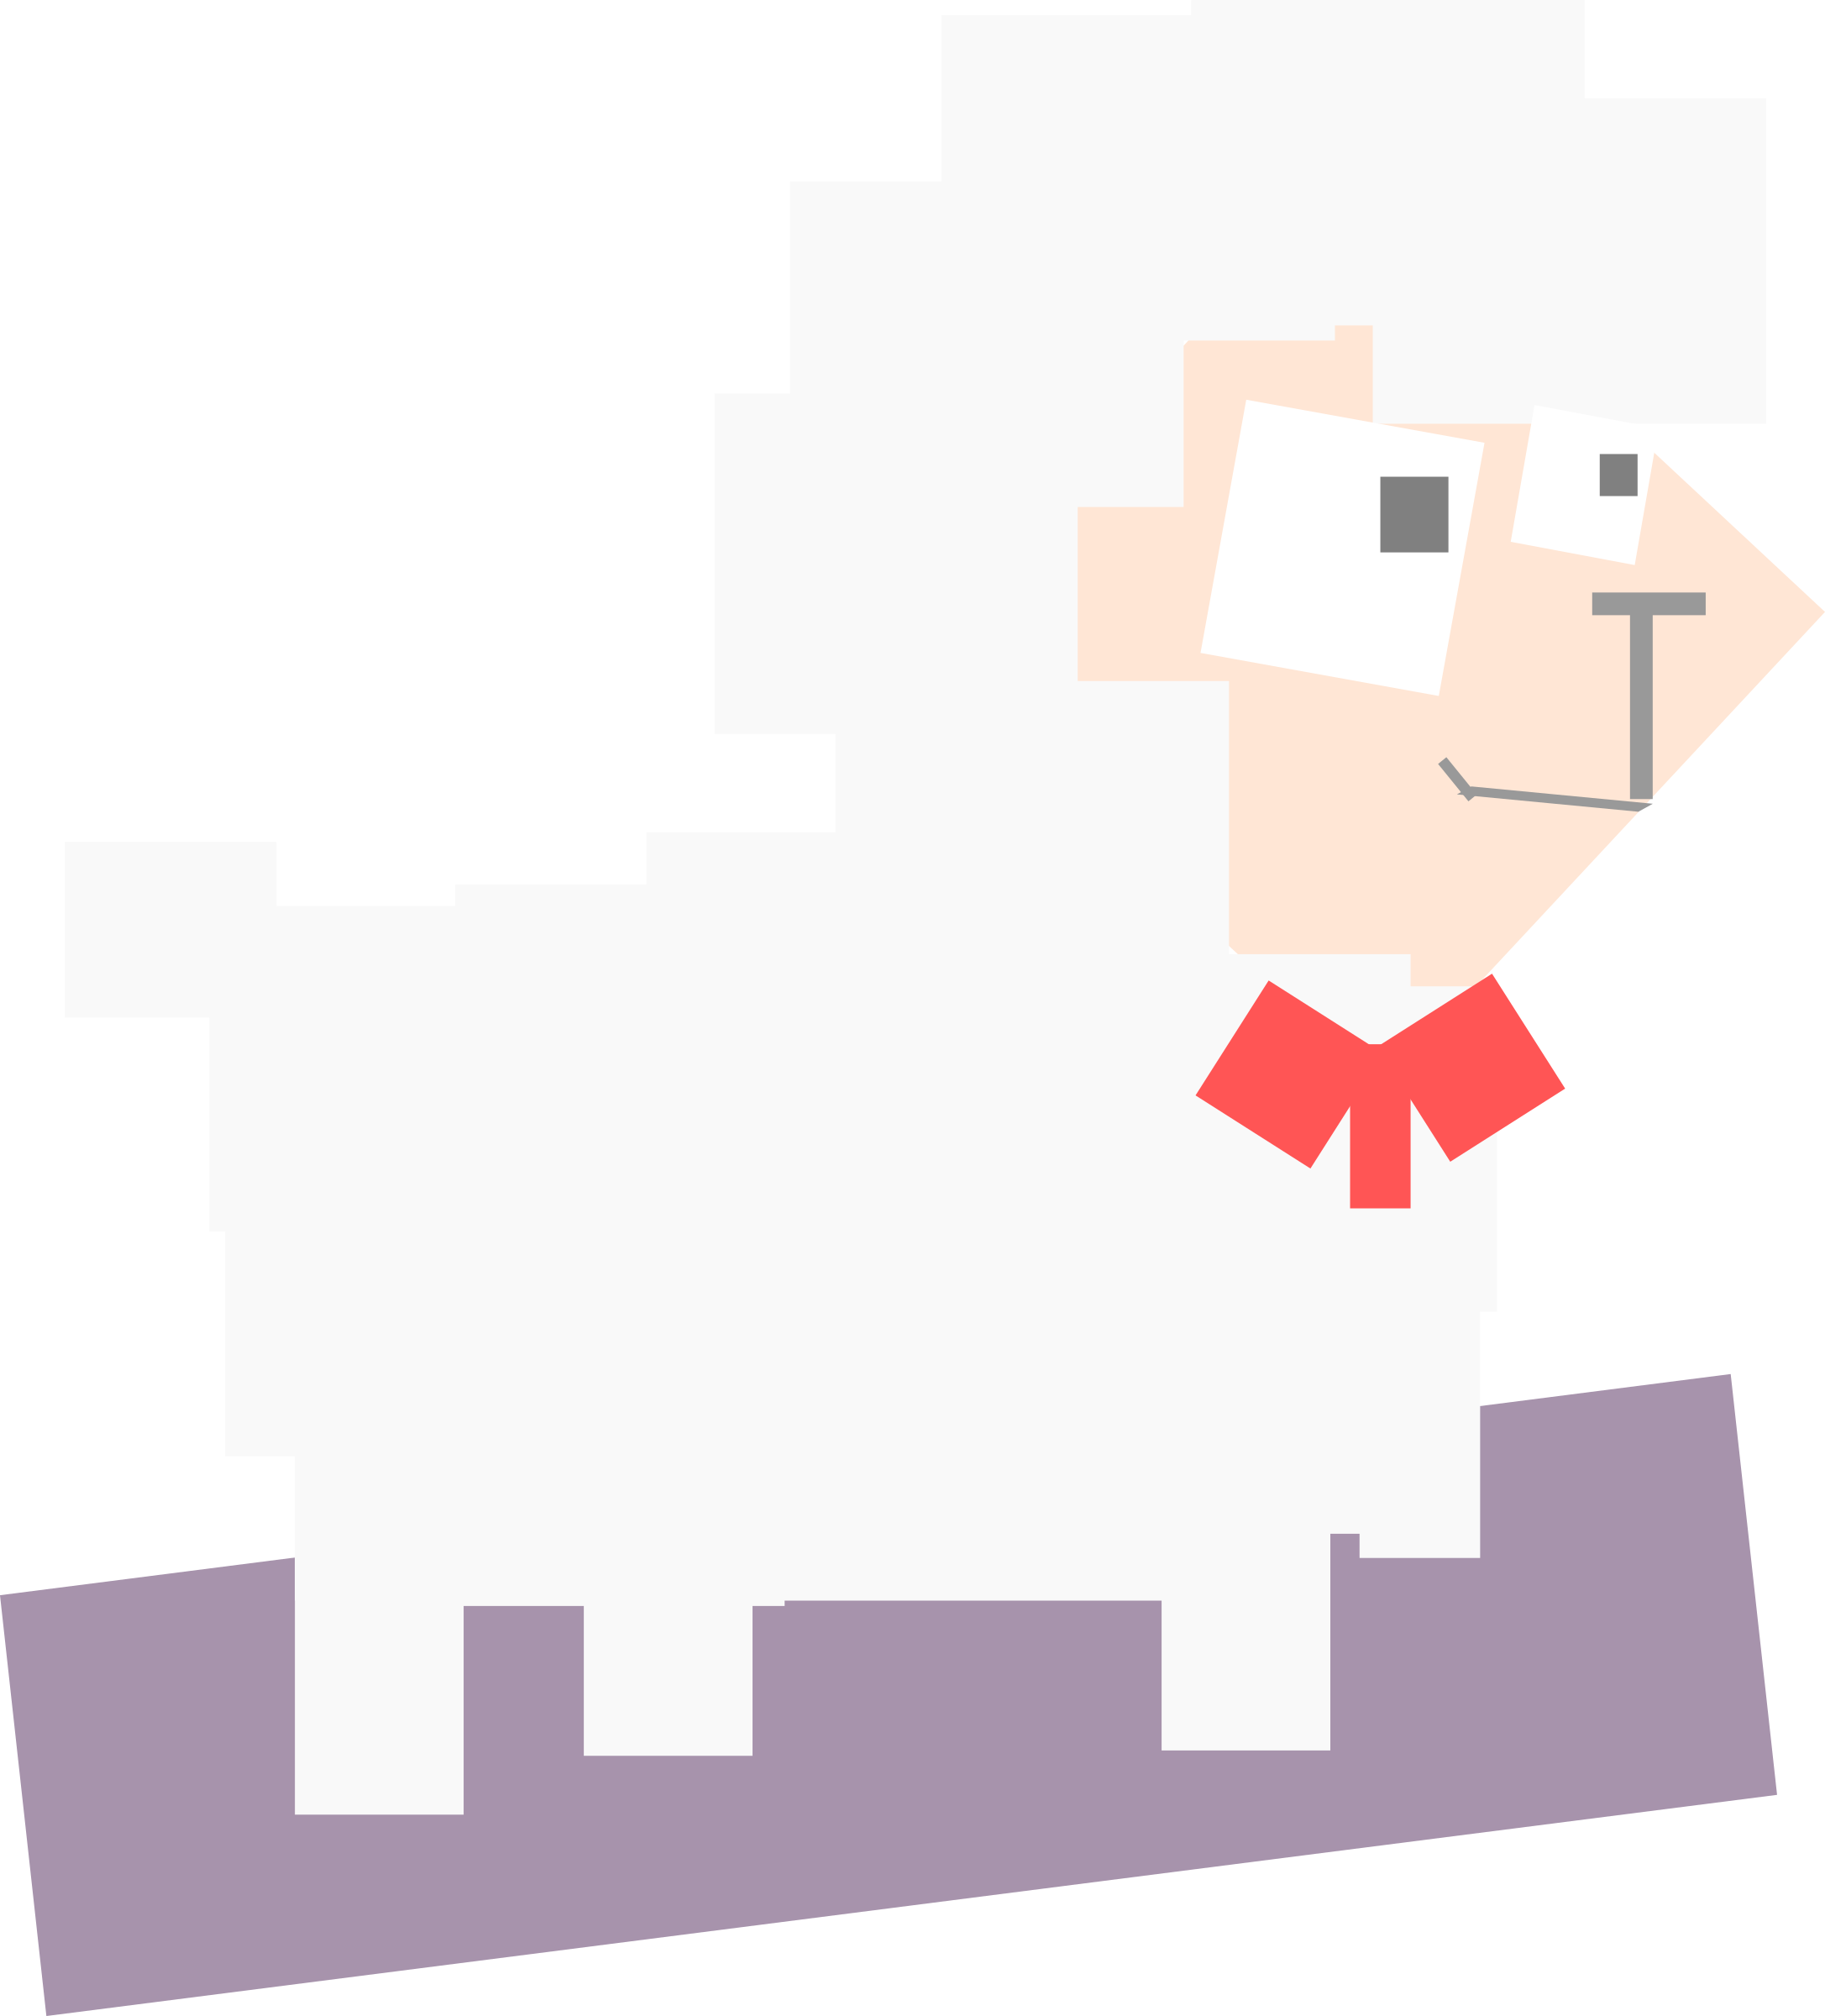 Square animal cartoon sheep by Dog99x